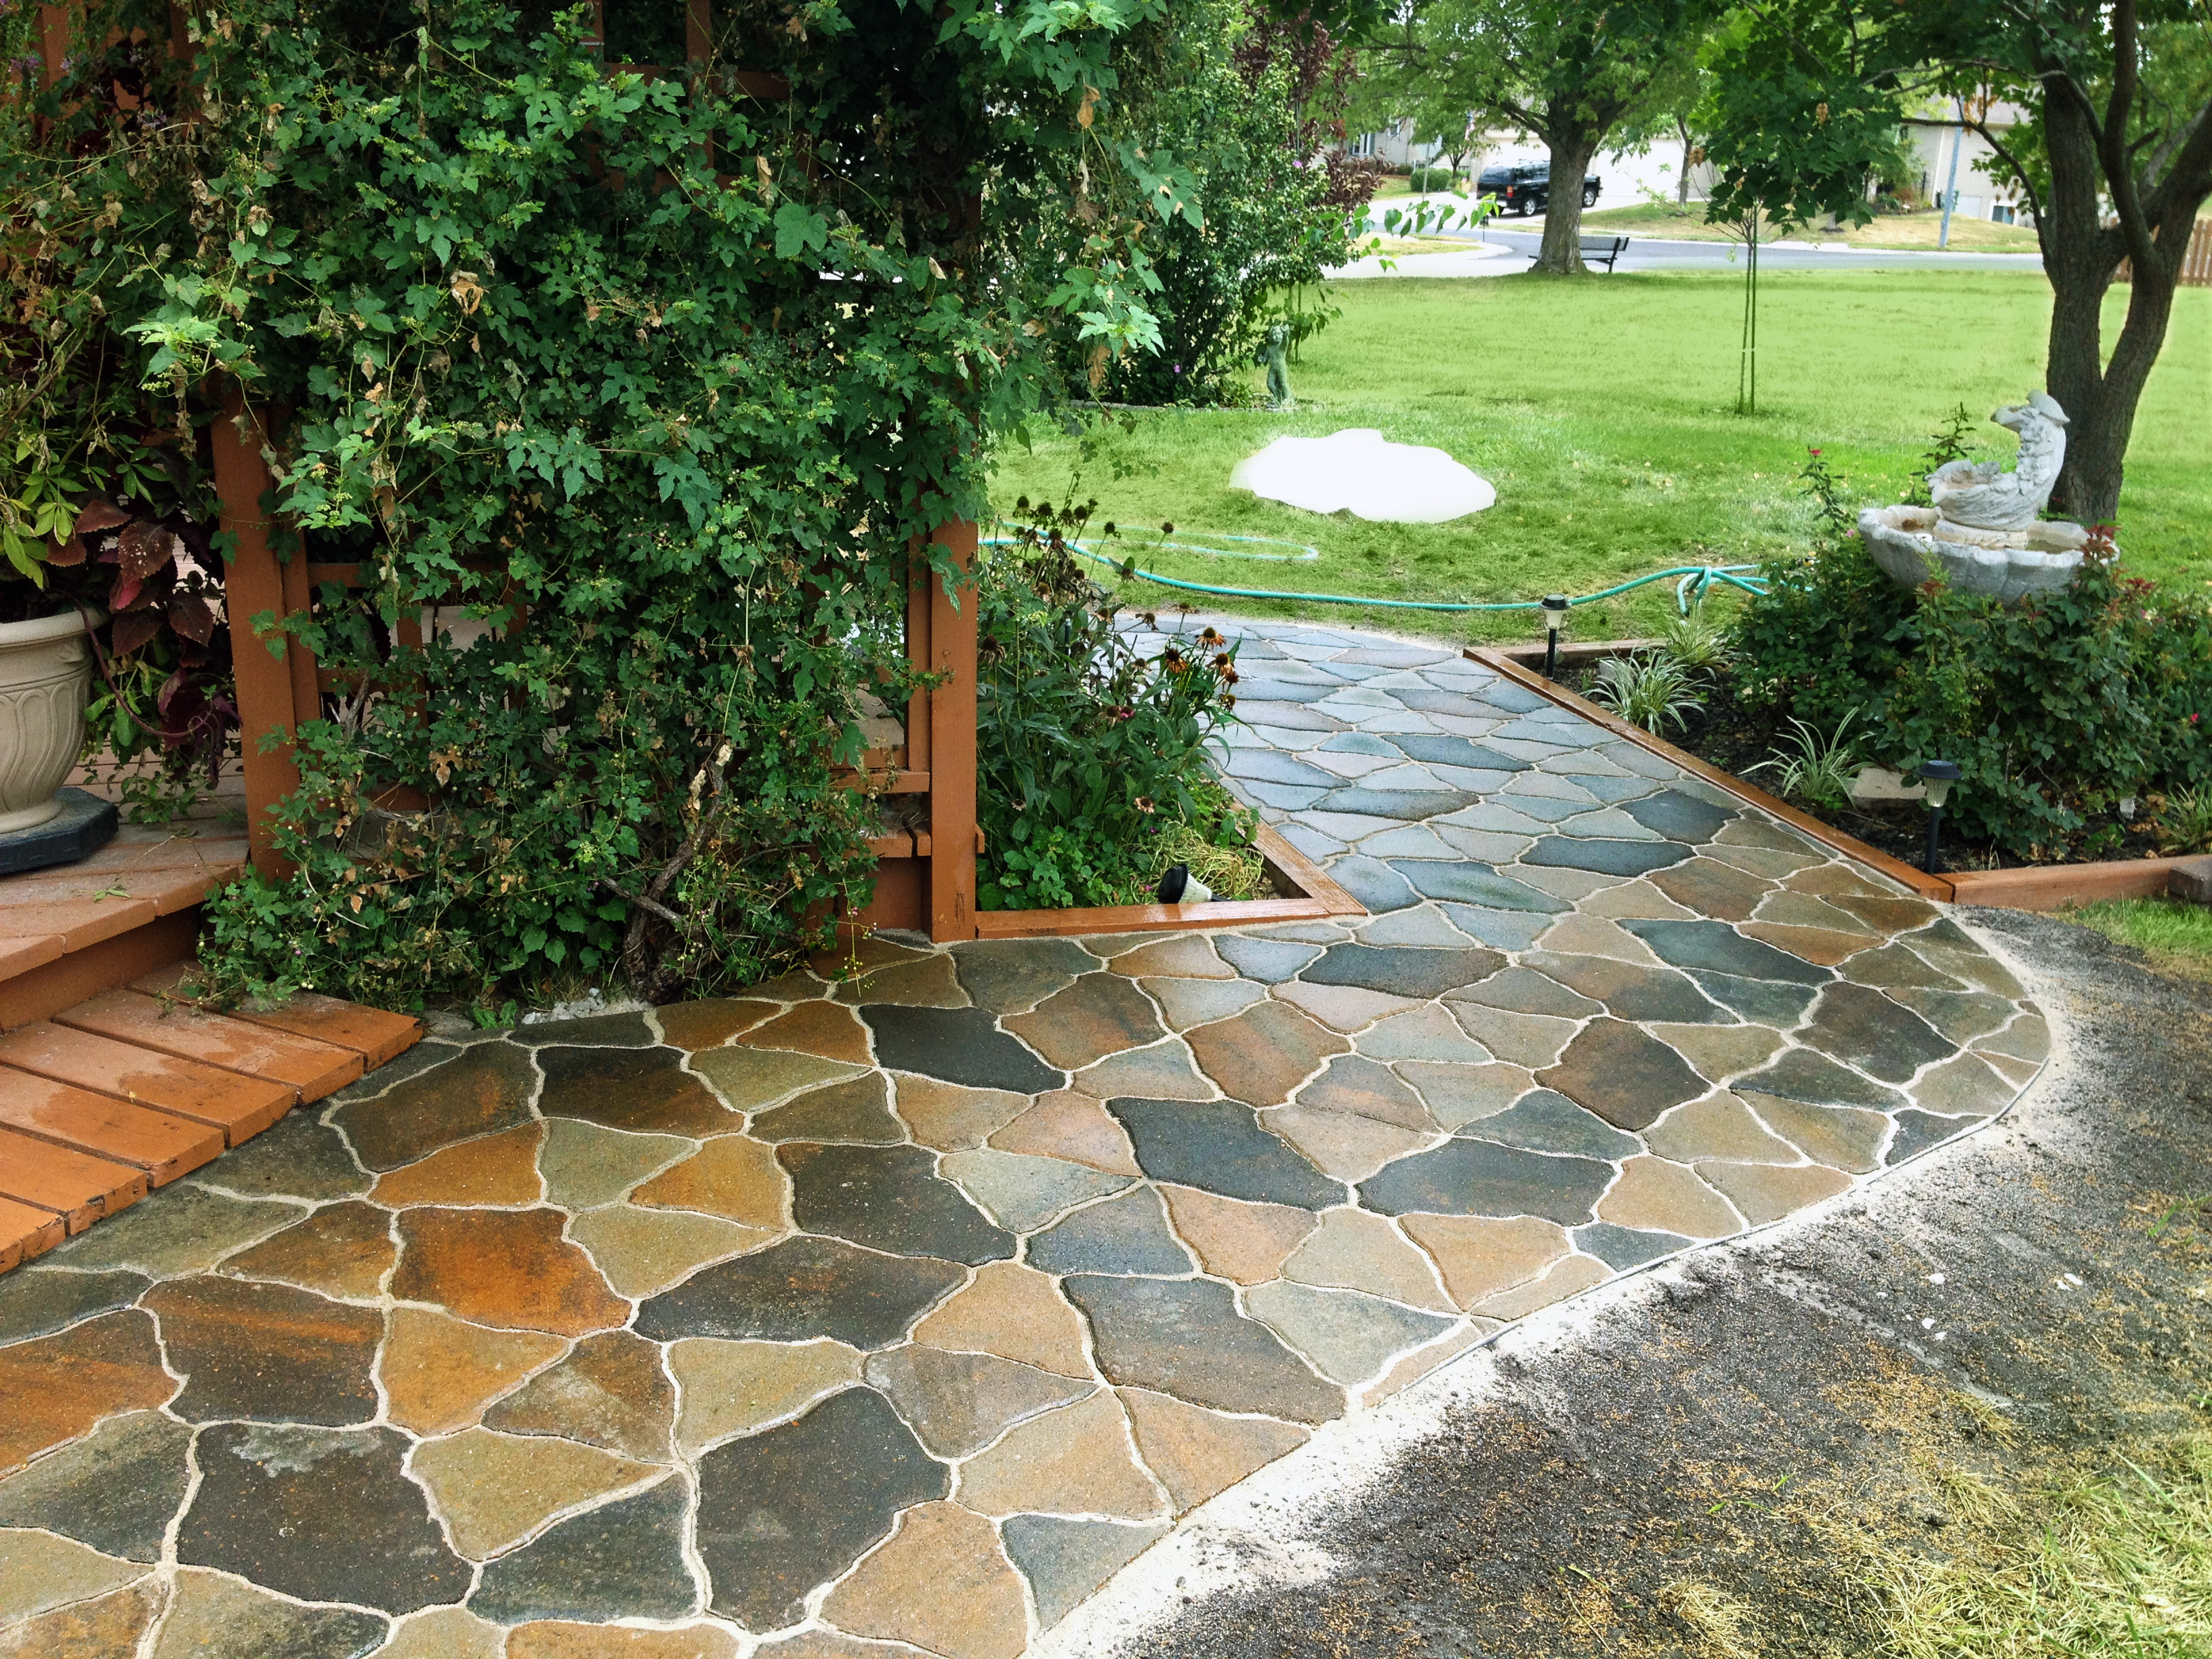 Walkways paths patios garden gate lawn landscape - Garden pathway design ideas with some natural stones trails ...